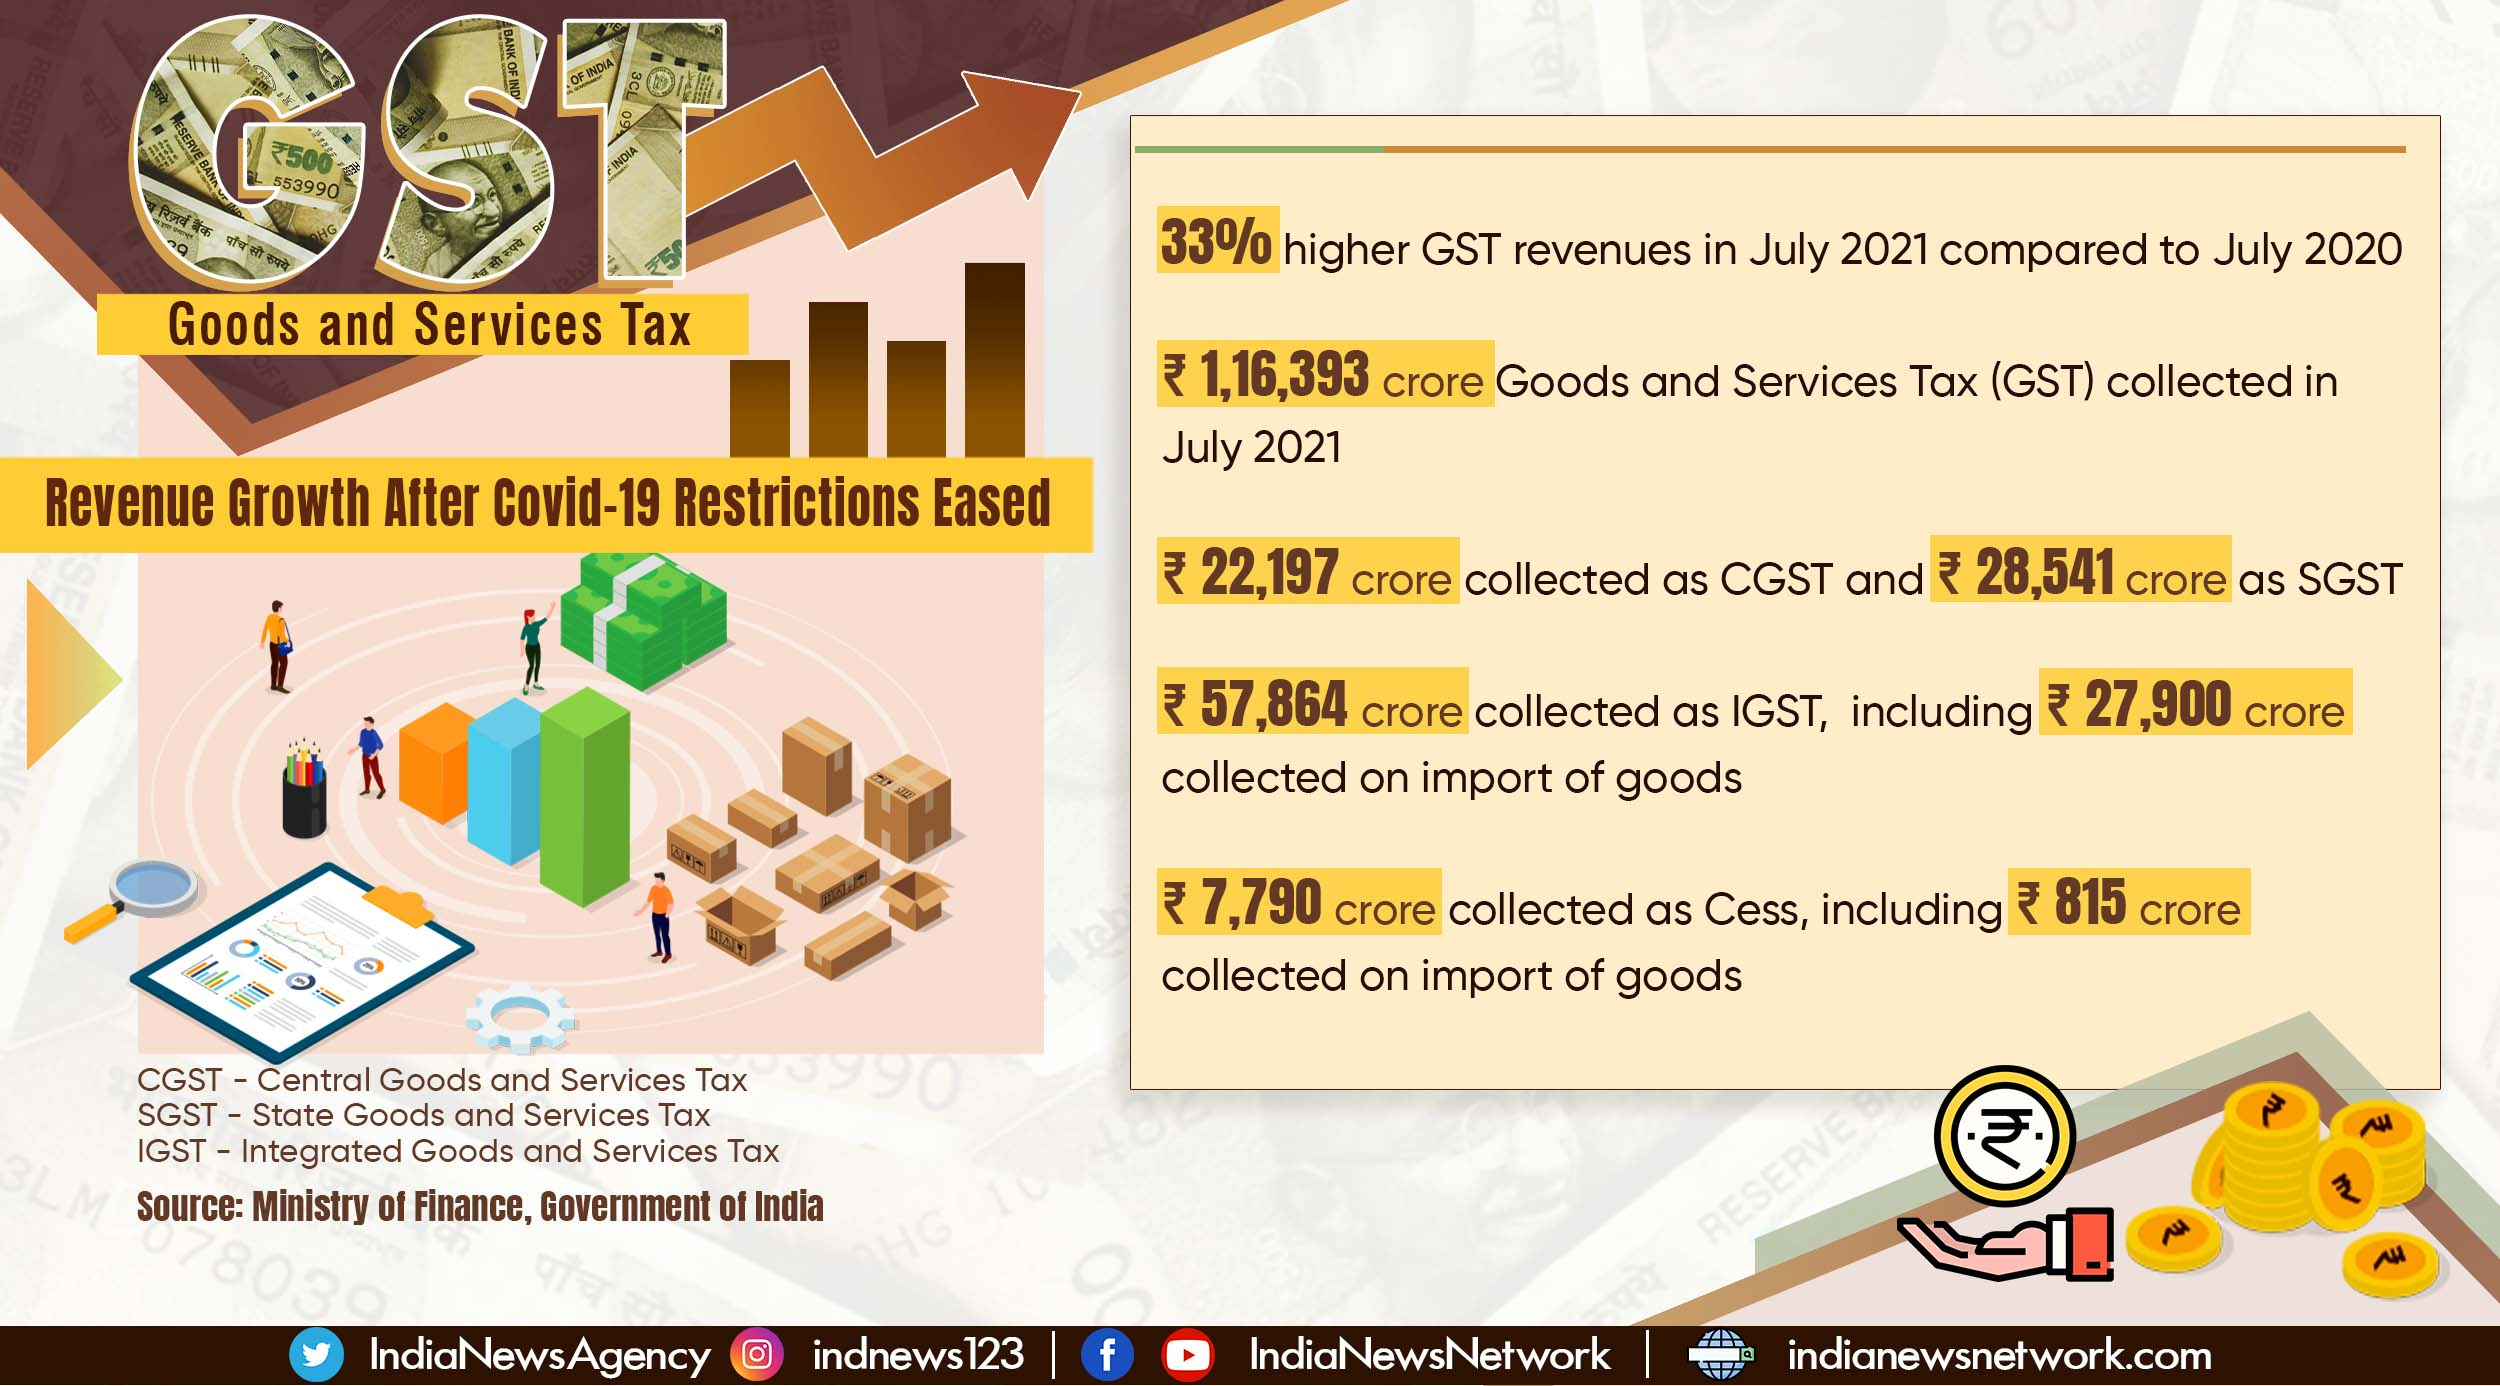 GST revenues for July 2021 33% higher than in July 2020